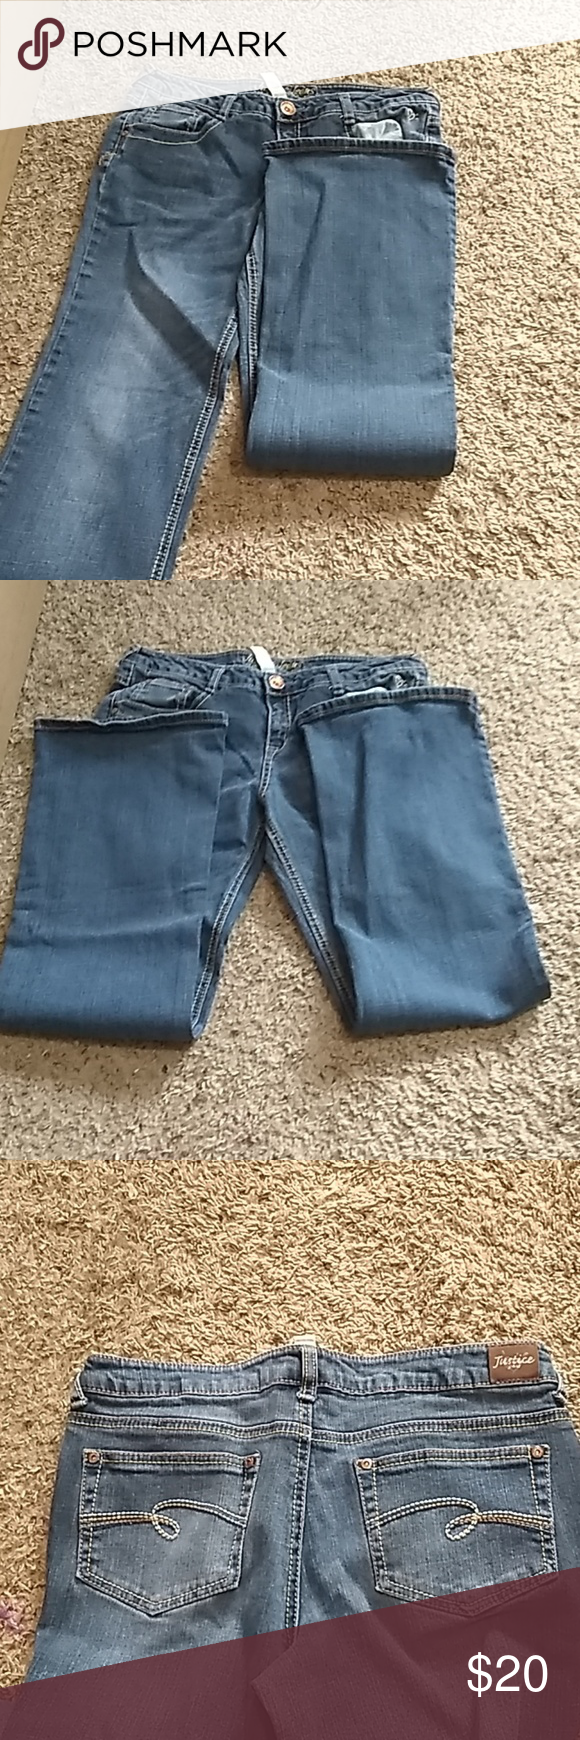 Girls Justice Jeans Size 16 And A Half 064 Clothes Design Fashion Fashion Trends